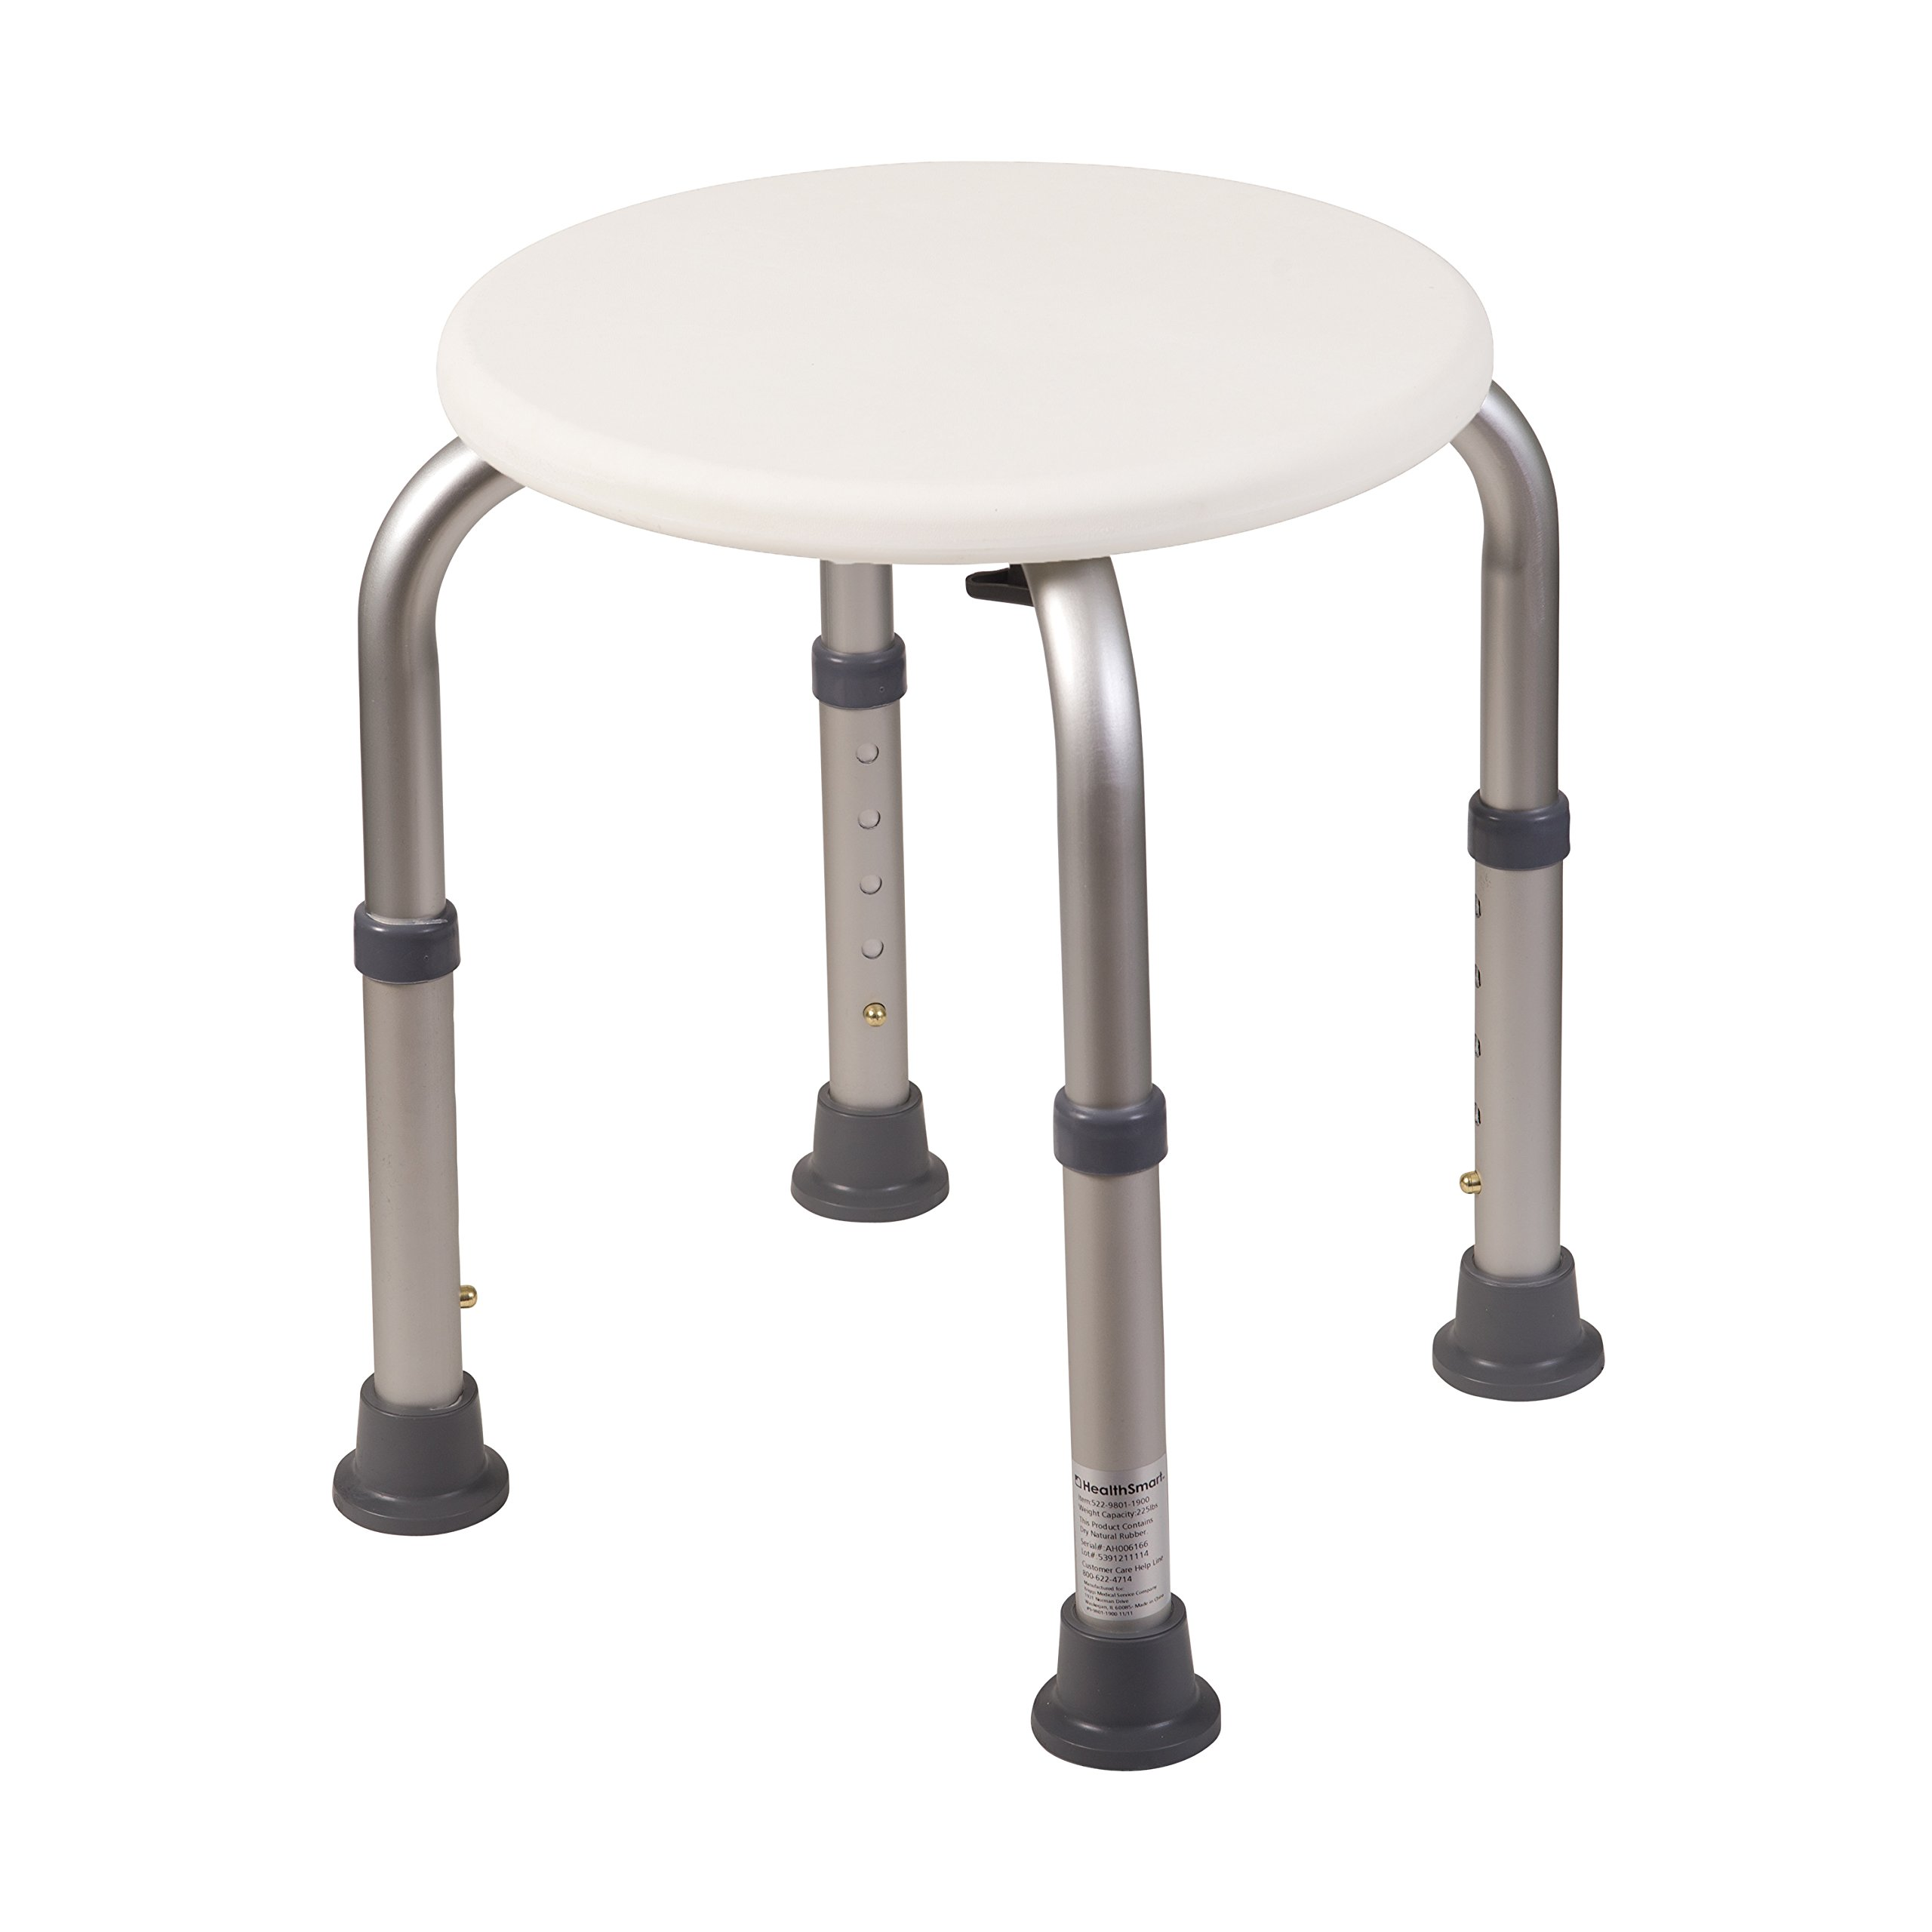 HealthSmart Medical Tool-Free Adjustable Compact Shower Stool and Bathtub Seat, Excellent for Small Showers and Bathtubs with Rubber Tips for Safety and Stability.